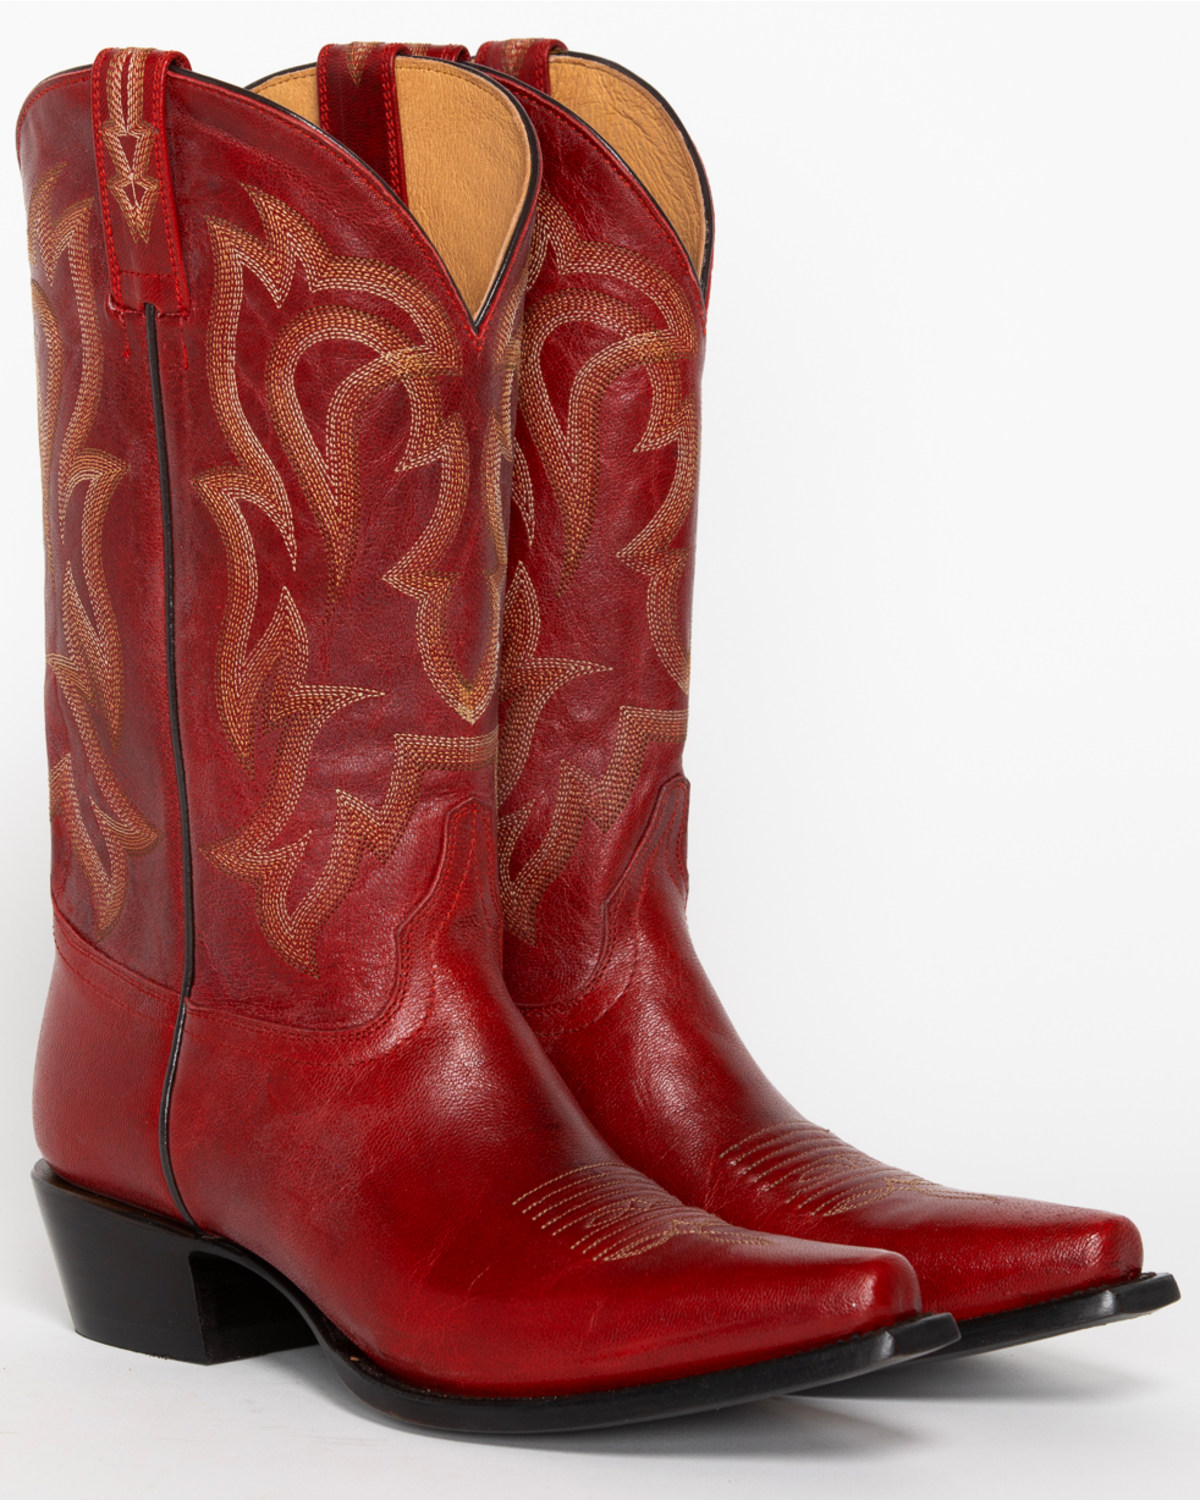 Amazoncom clearance ariat boots Clothing Shoes amp Jewelry